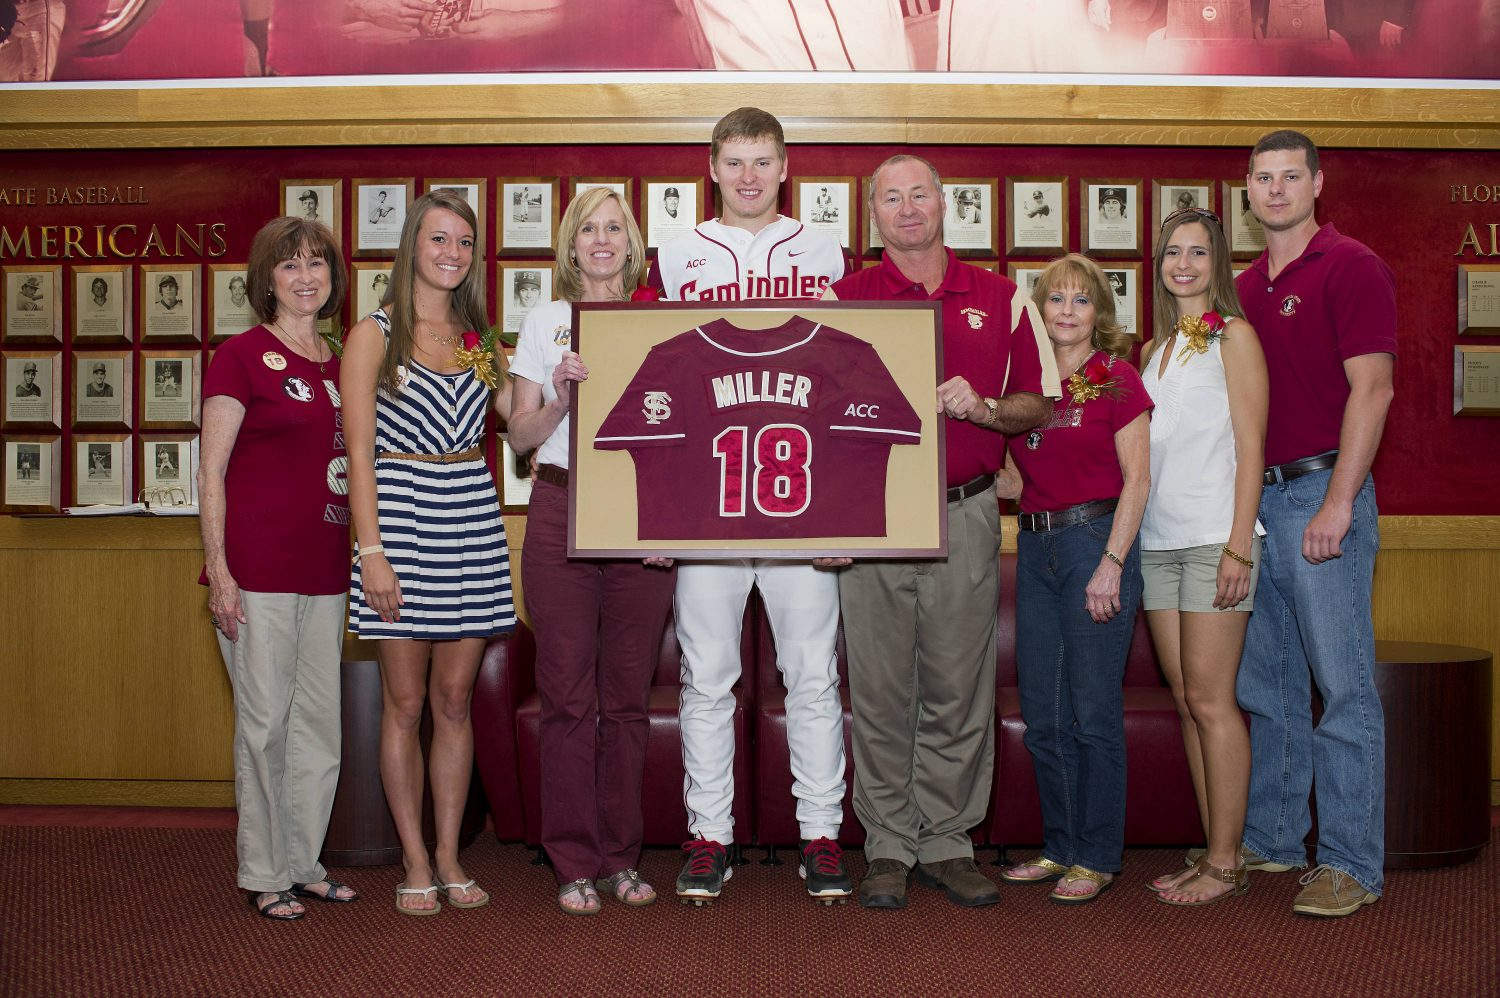 Seth Miller (18) and family members